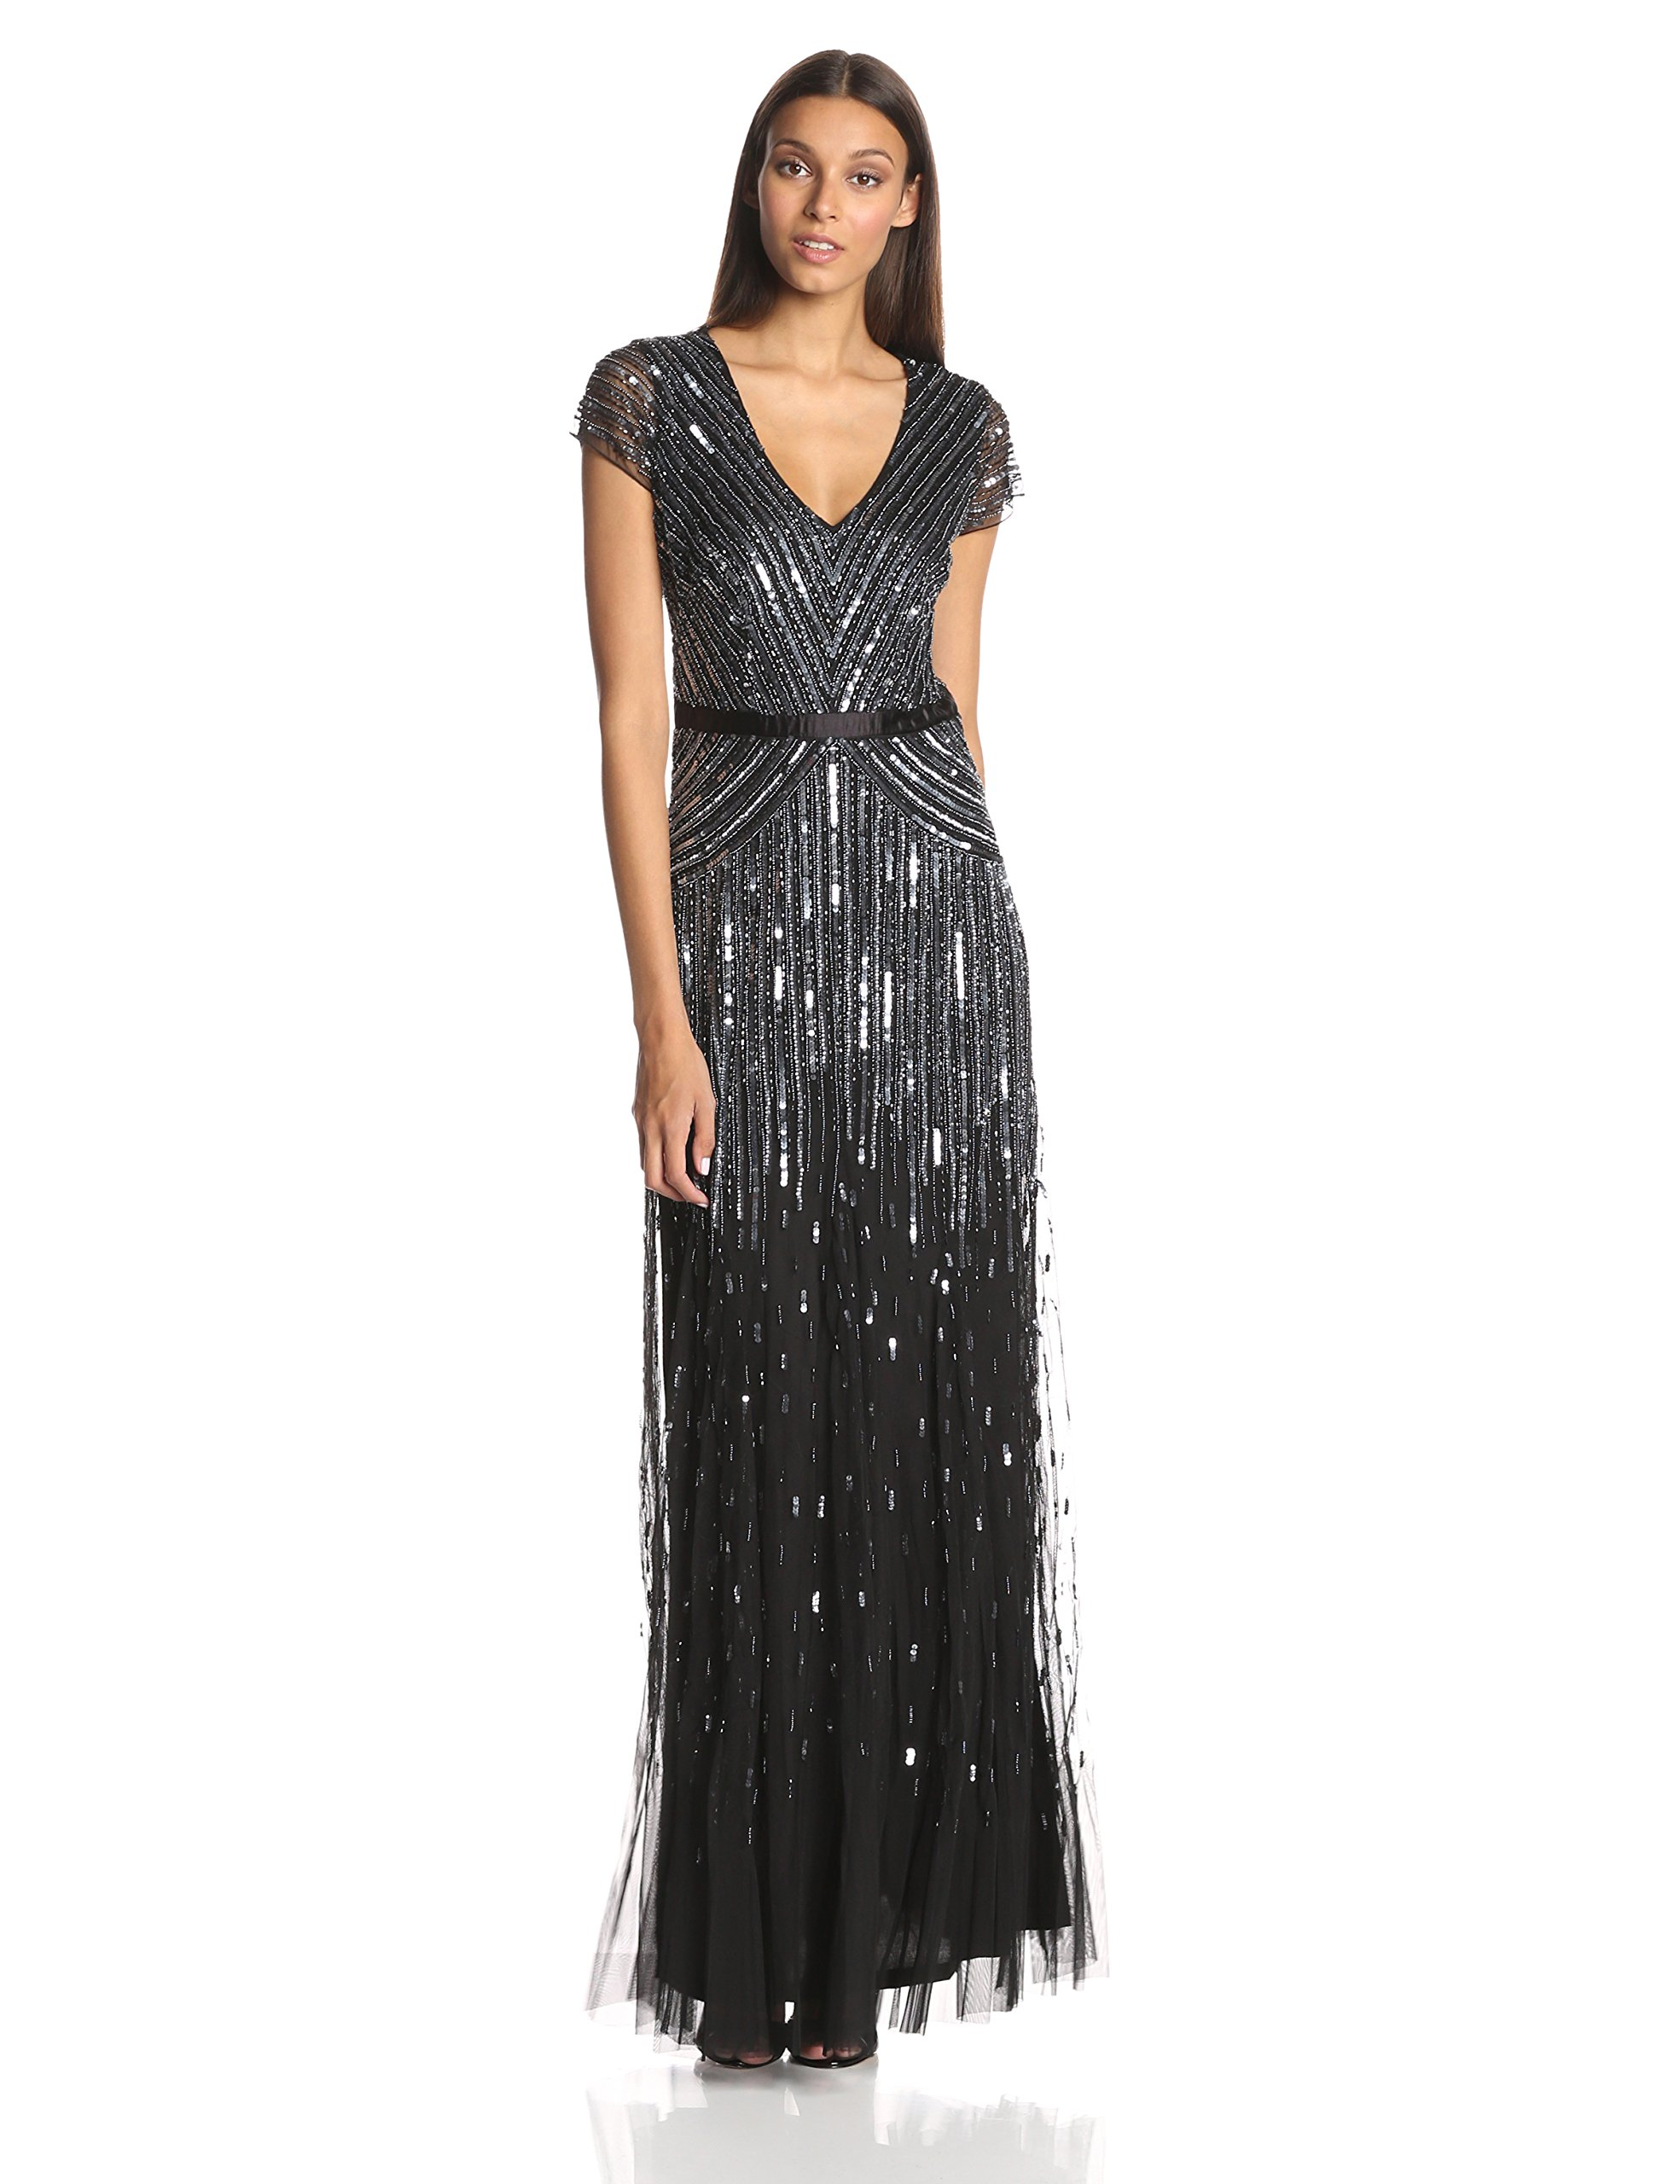 Adrianna Papell Women's Long Beaded V-Neck Dress With Cap Sleeves and Waistband, Gunmetal, 14